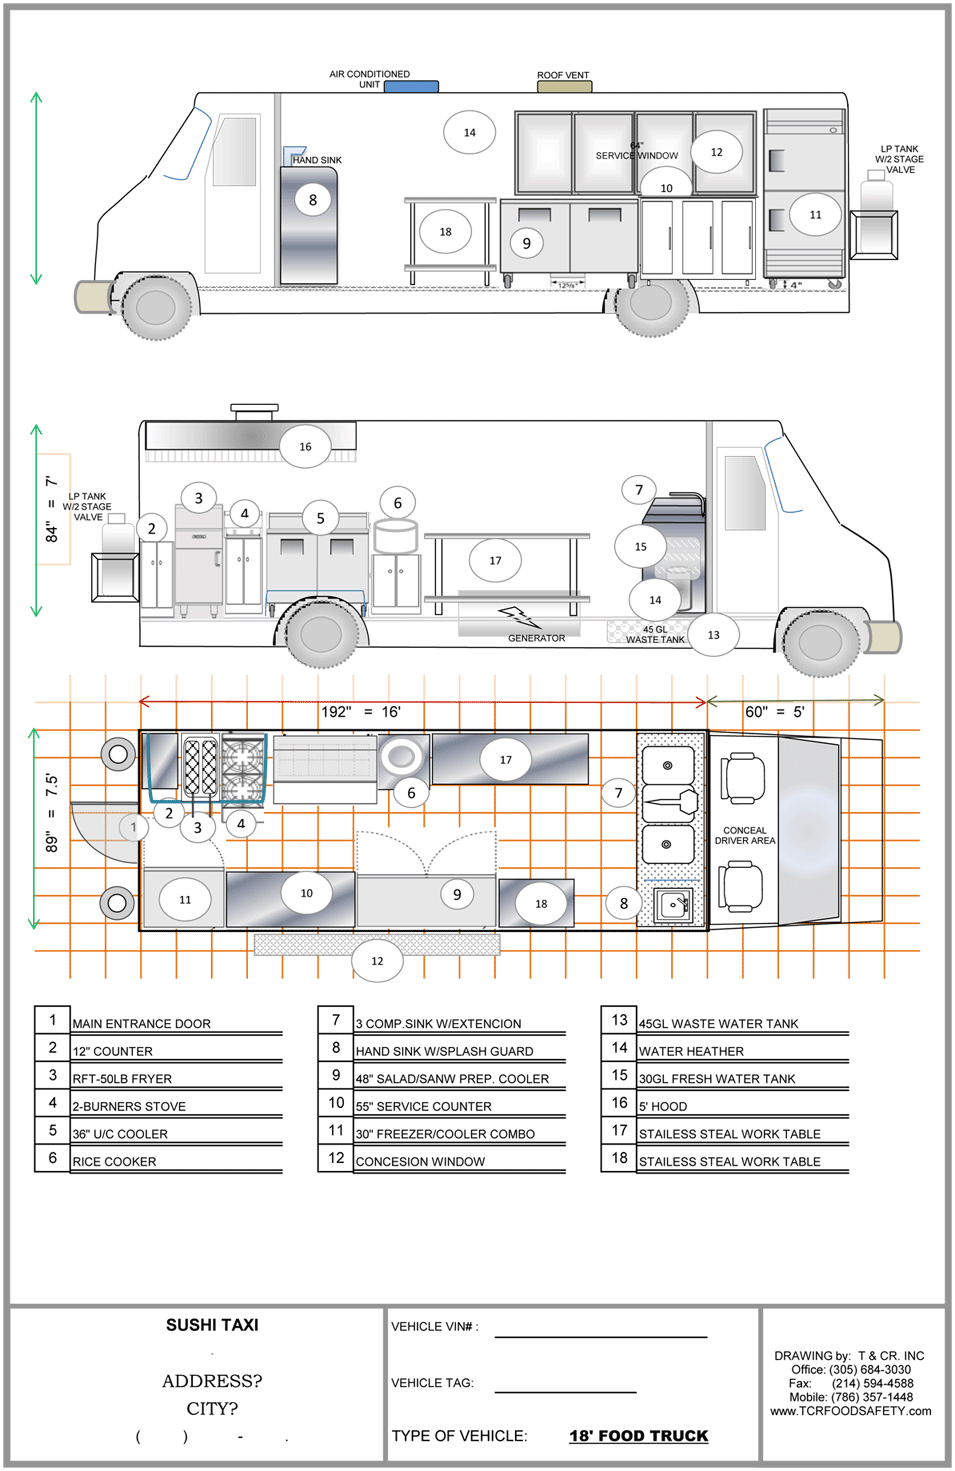 Food Truck Parking Dimensions